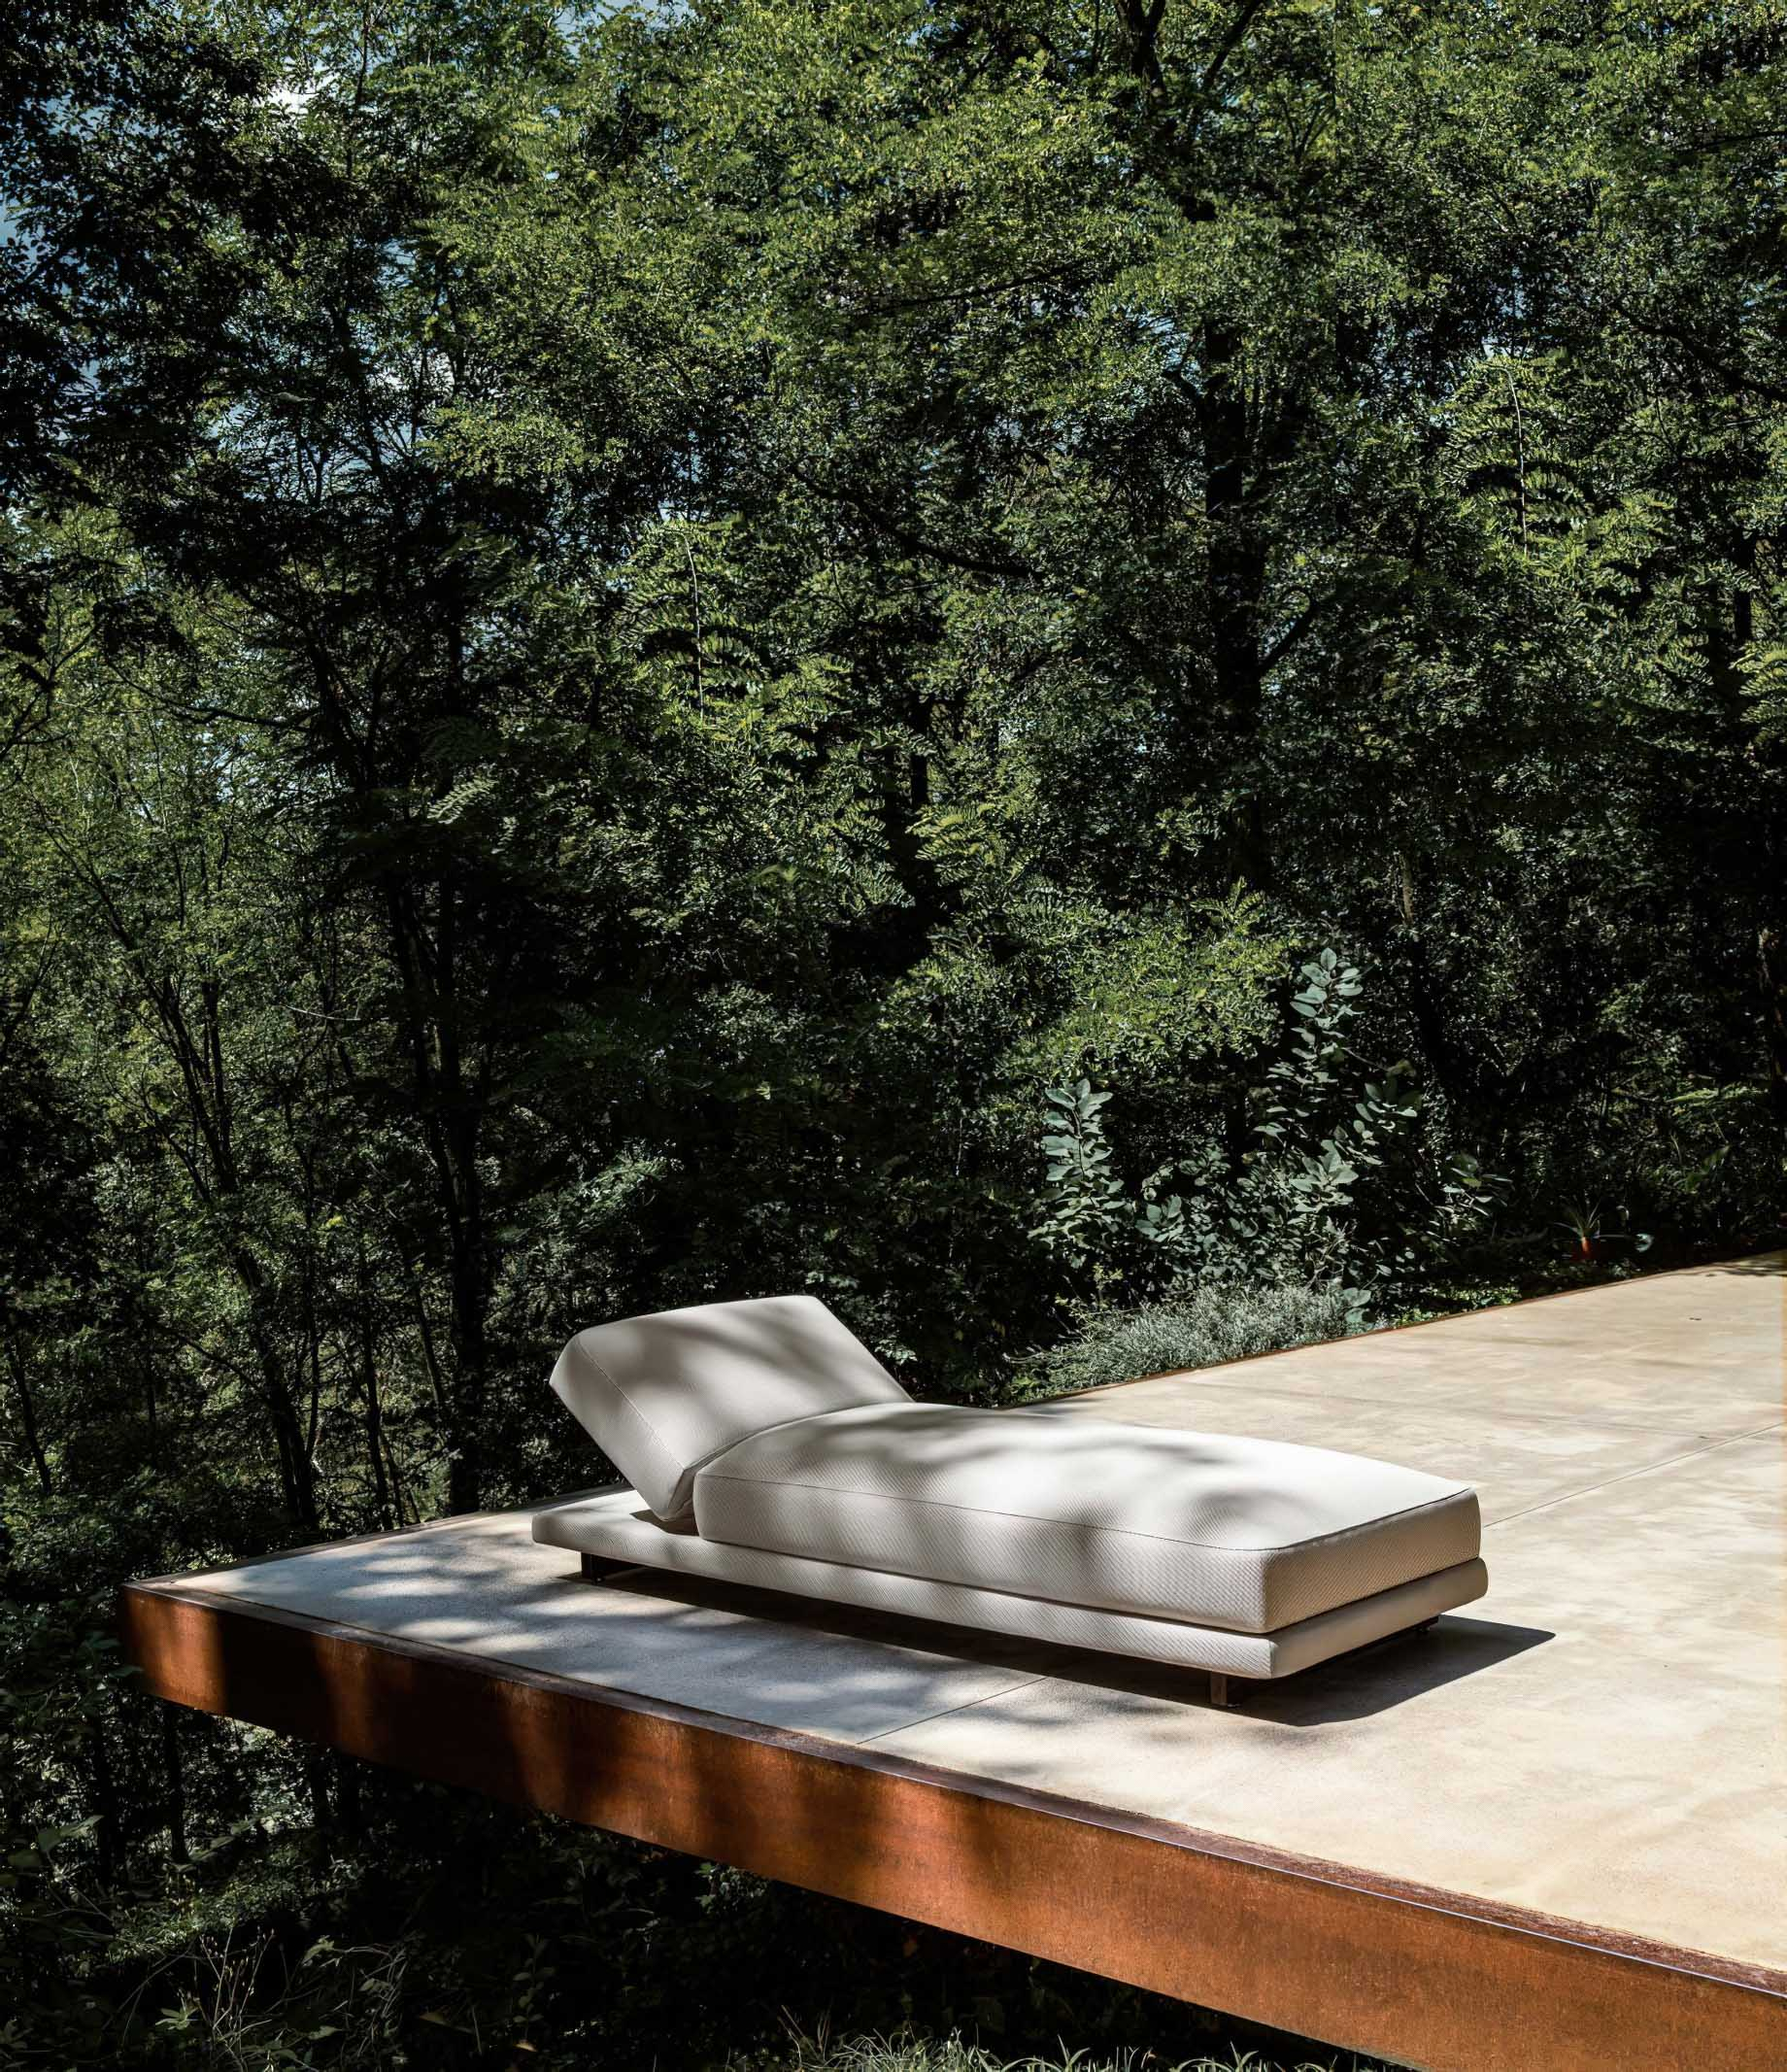 Argo Outdoor Furniture Collection by Talenti Outdoor Living Italy – Palomba Serafini Associati